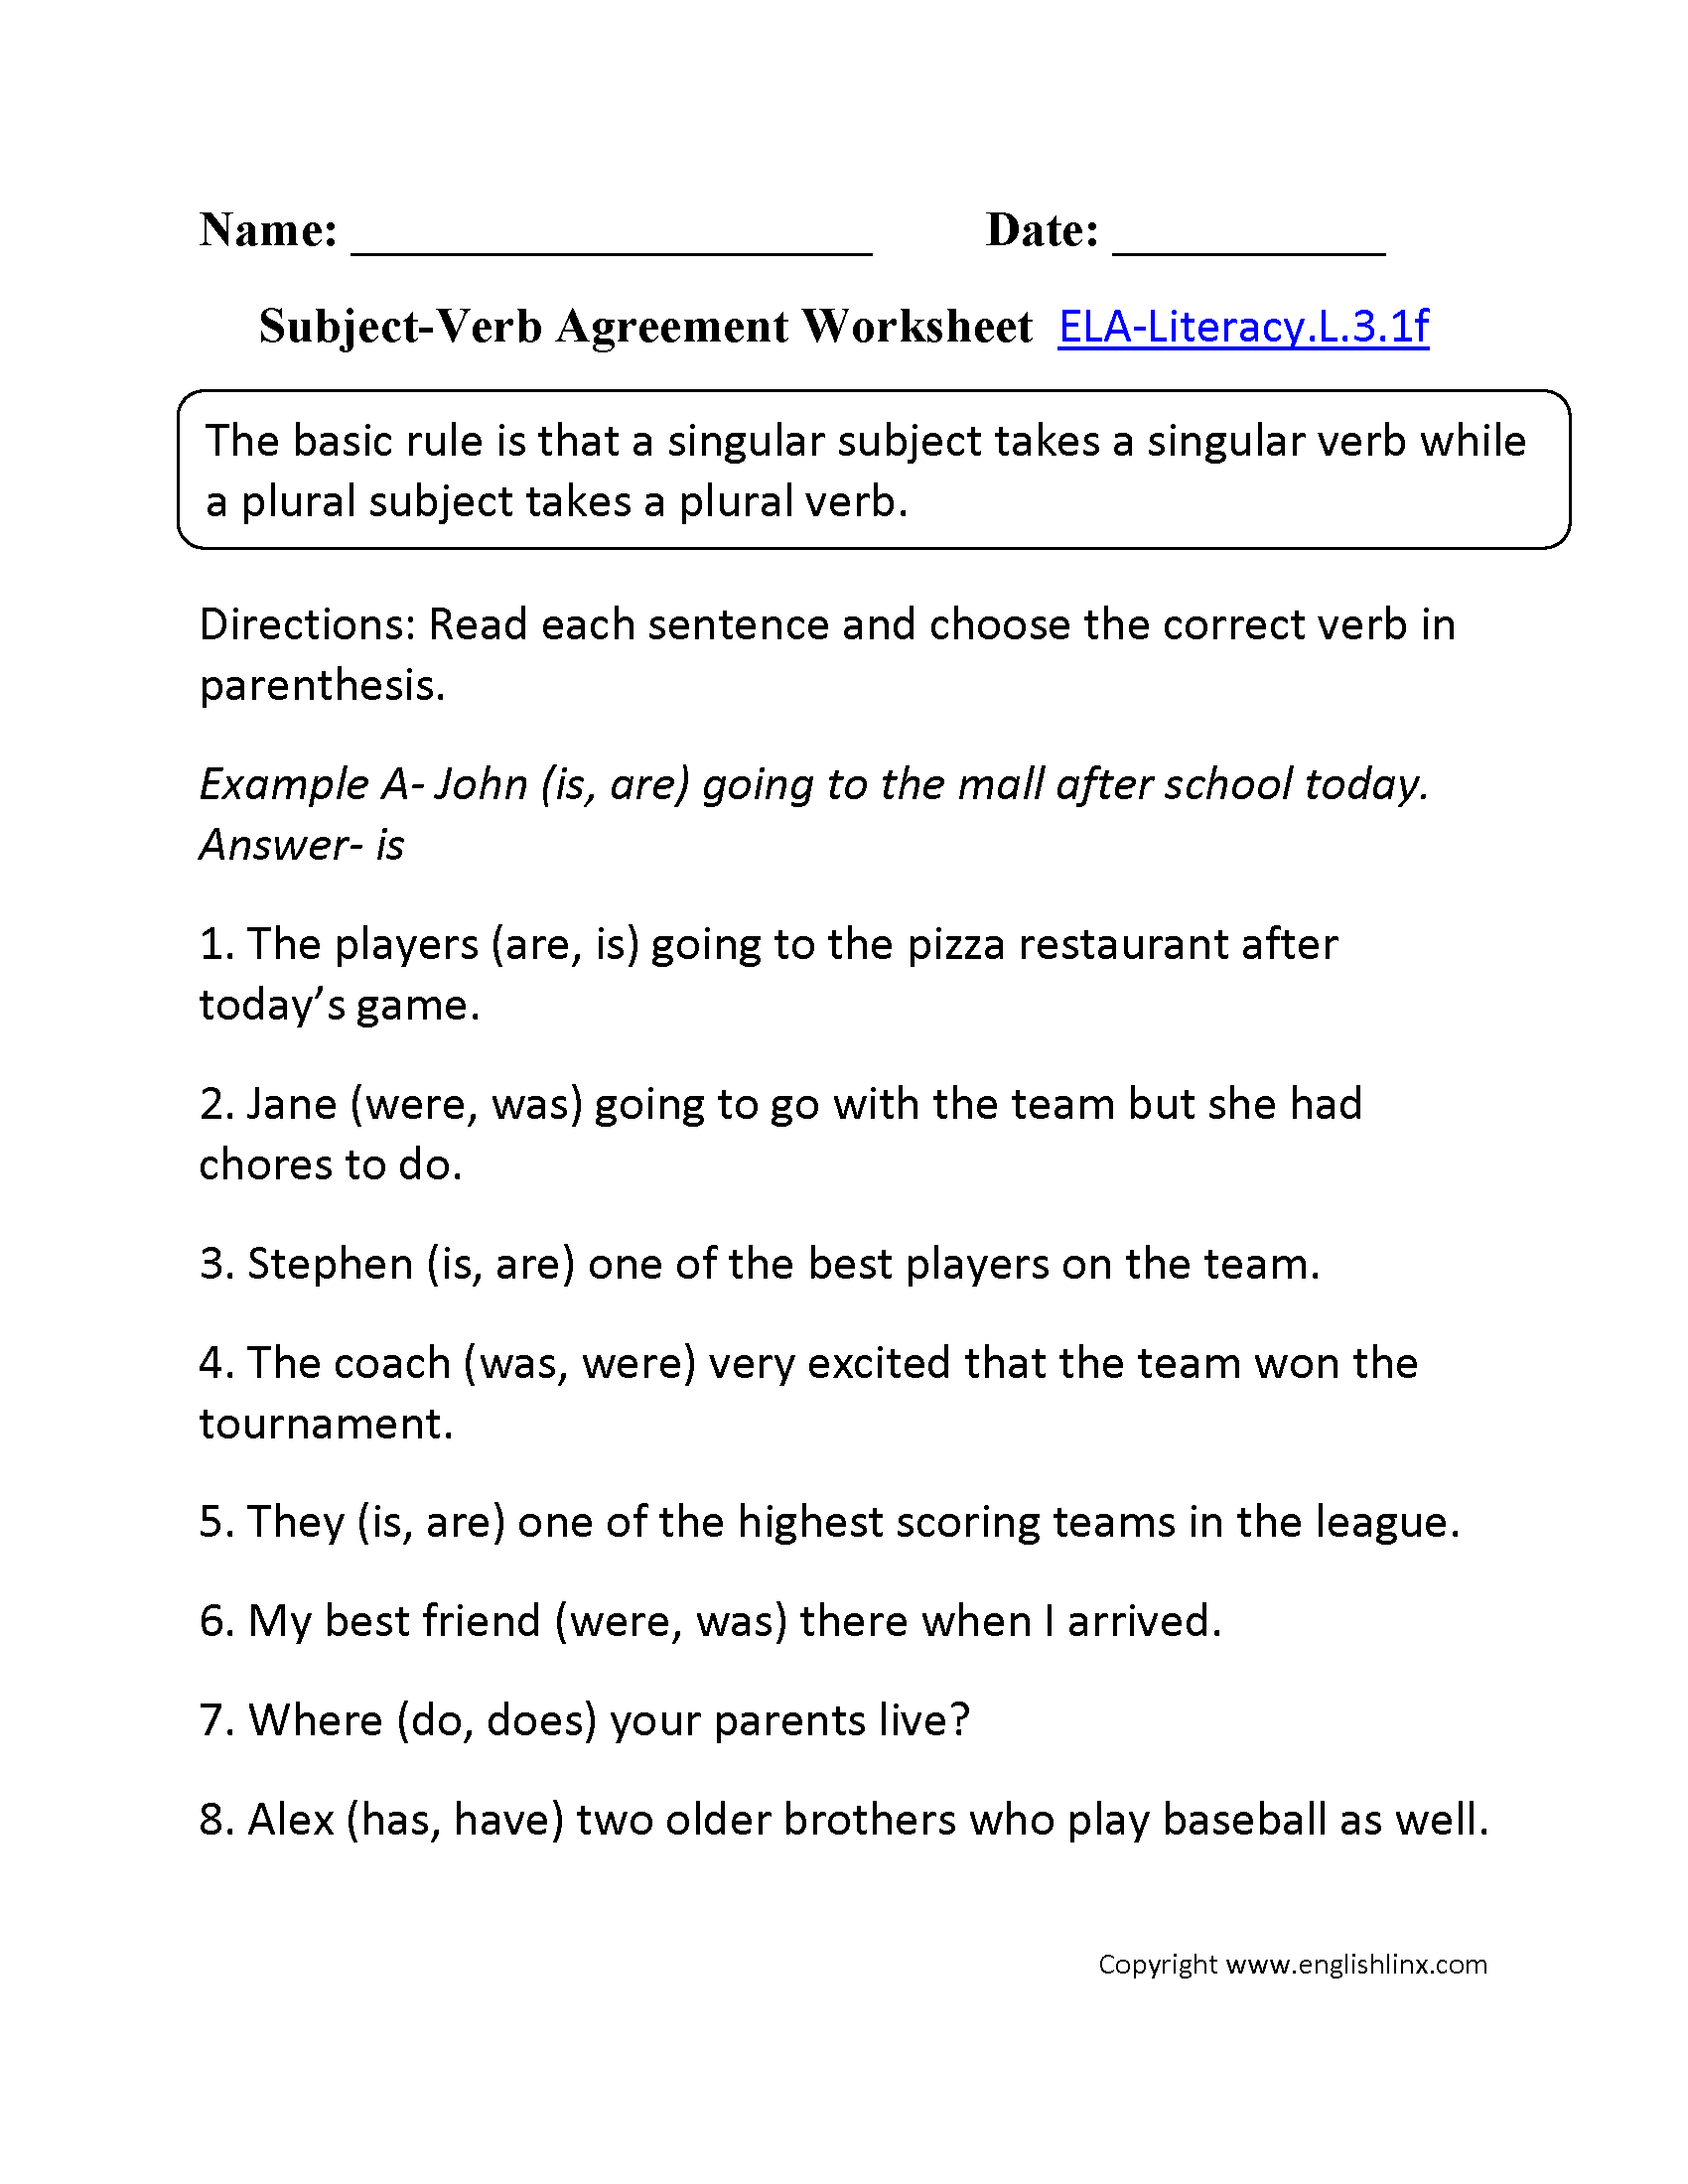 Worksheets Subject Verb Agreement Worksheets 3rd Grade 3rd grade common core language worksheets subject verb agreement worksheet 2 ela literacy l 3 1f worksheet